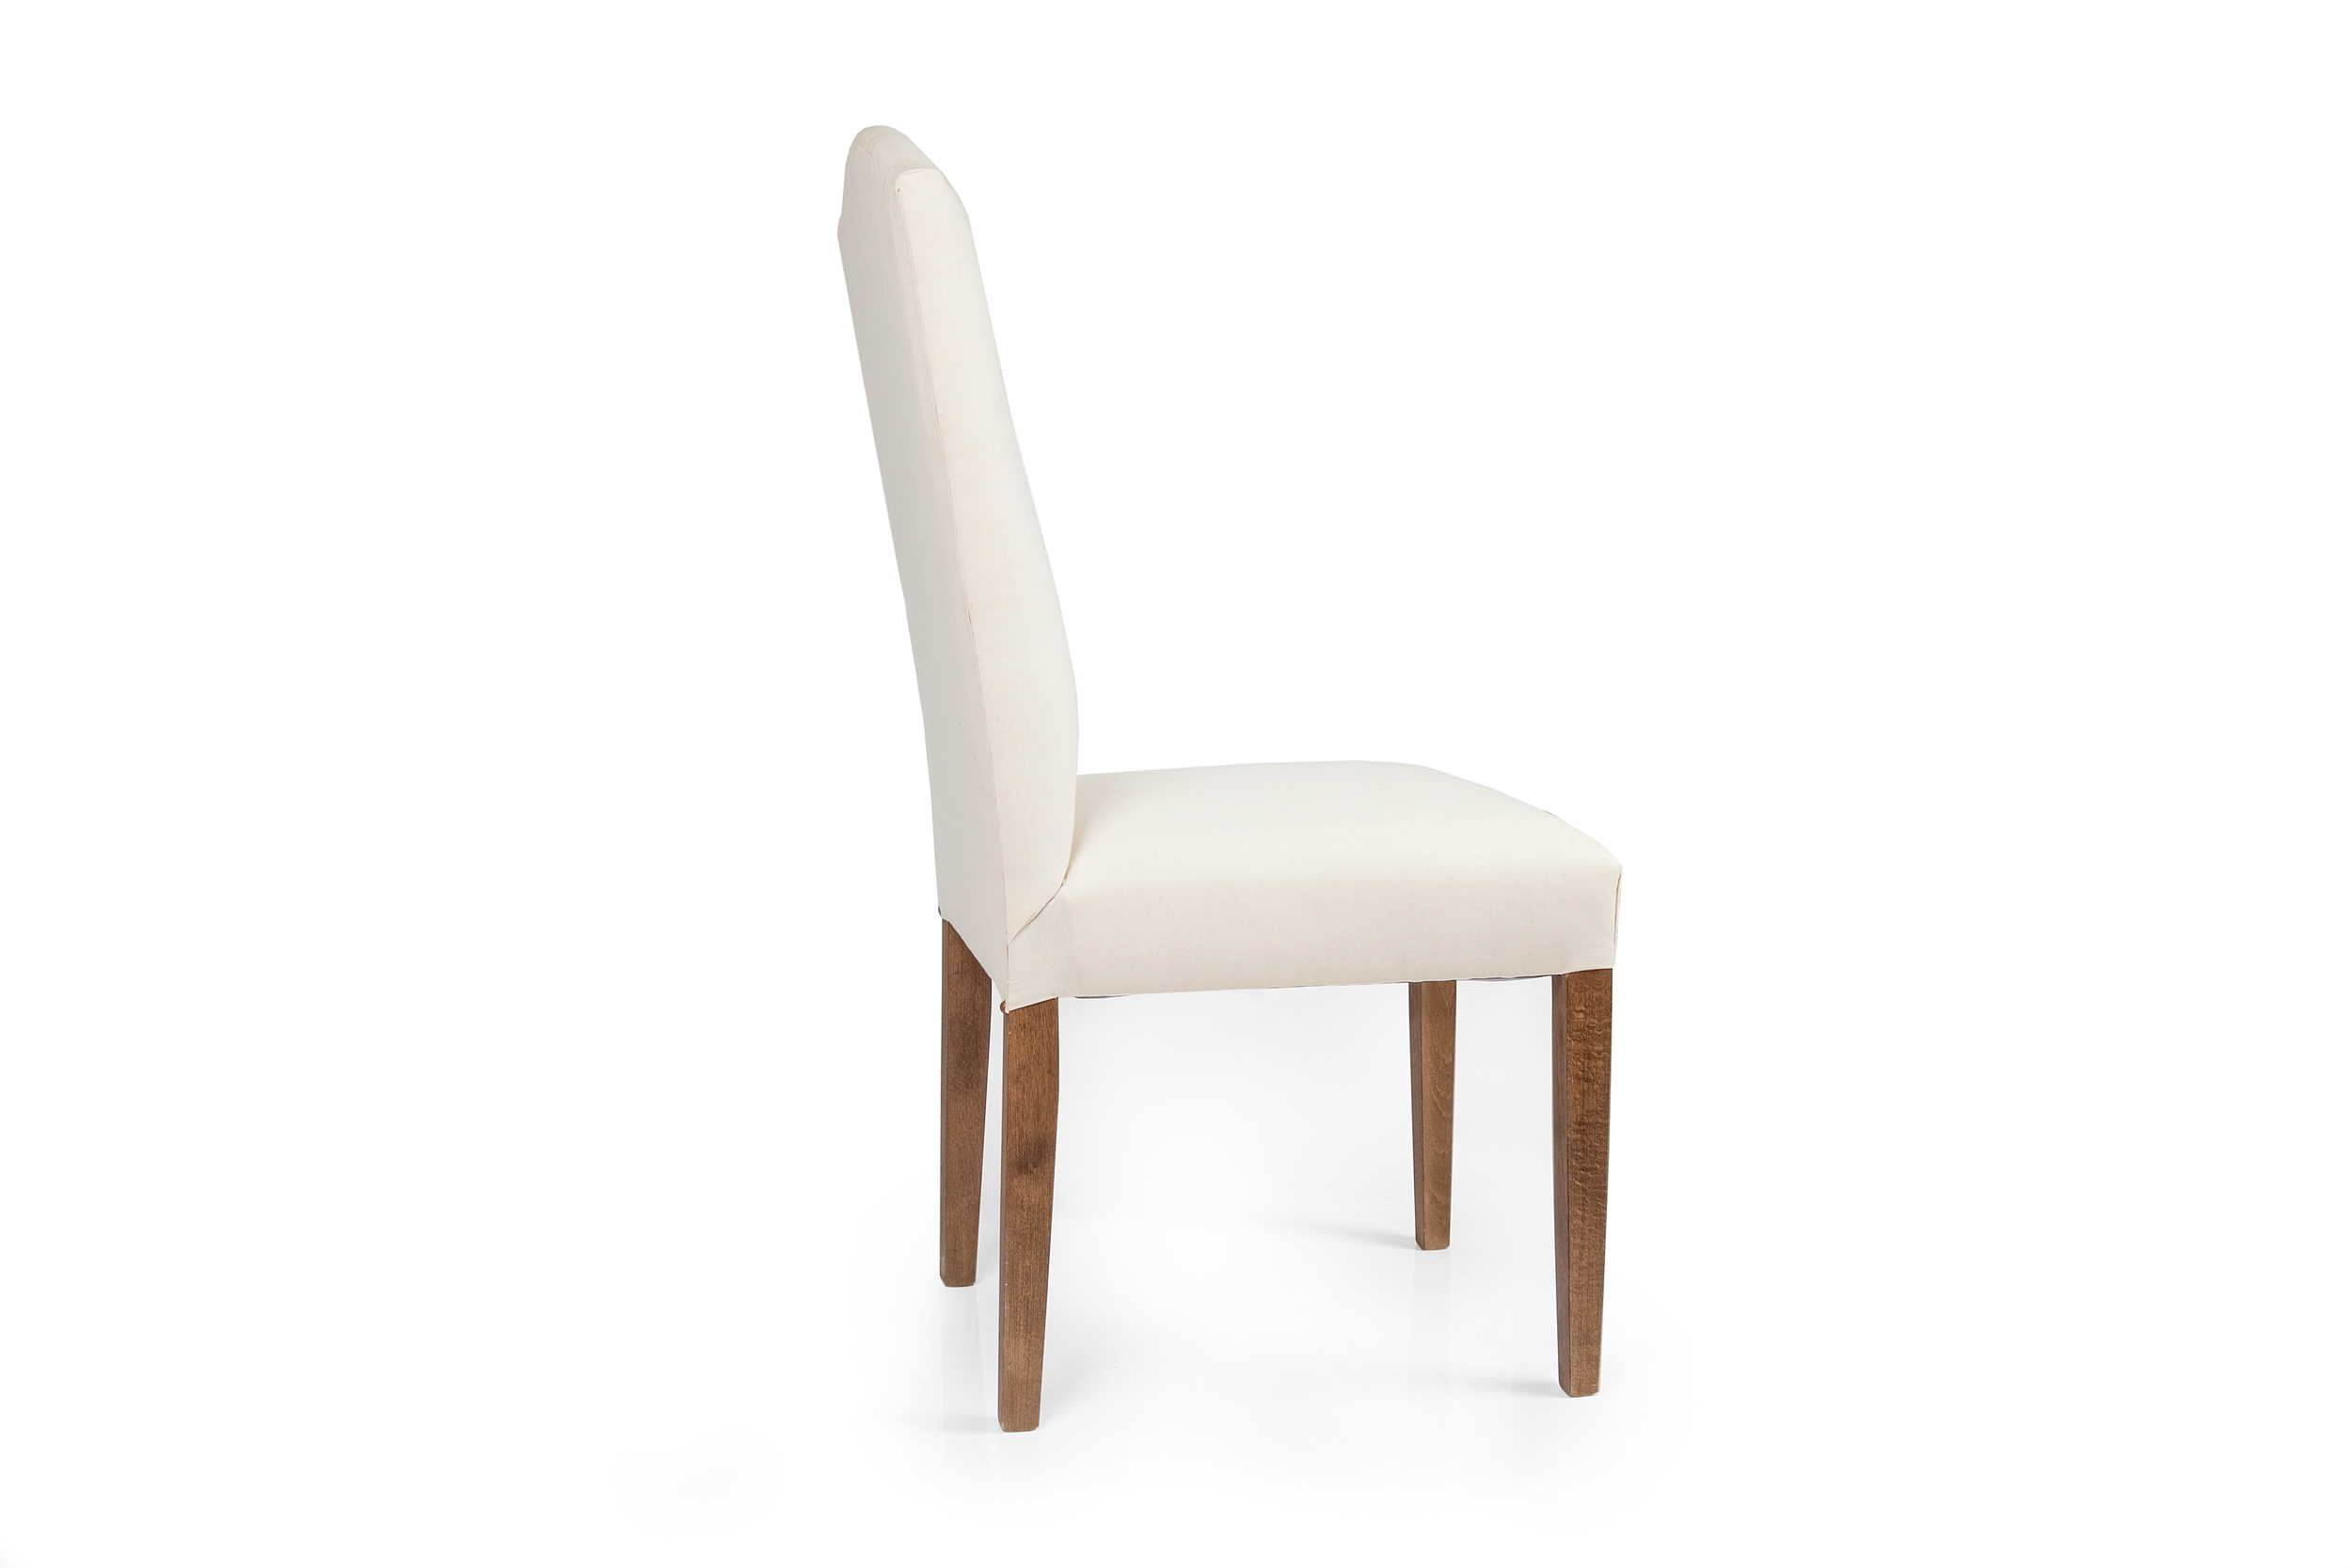 Classic Dining Chair in calico